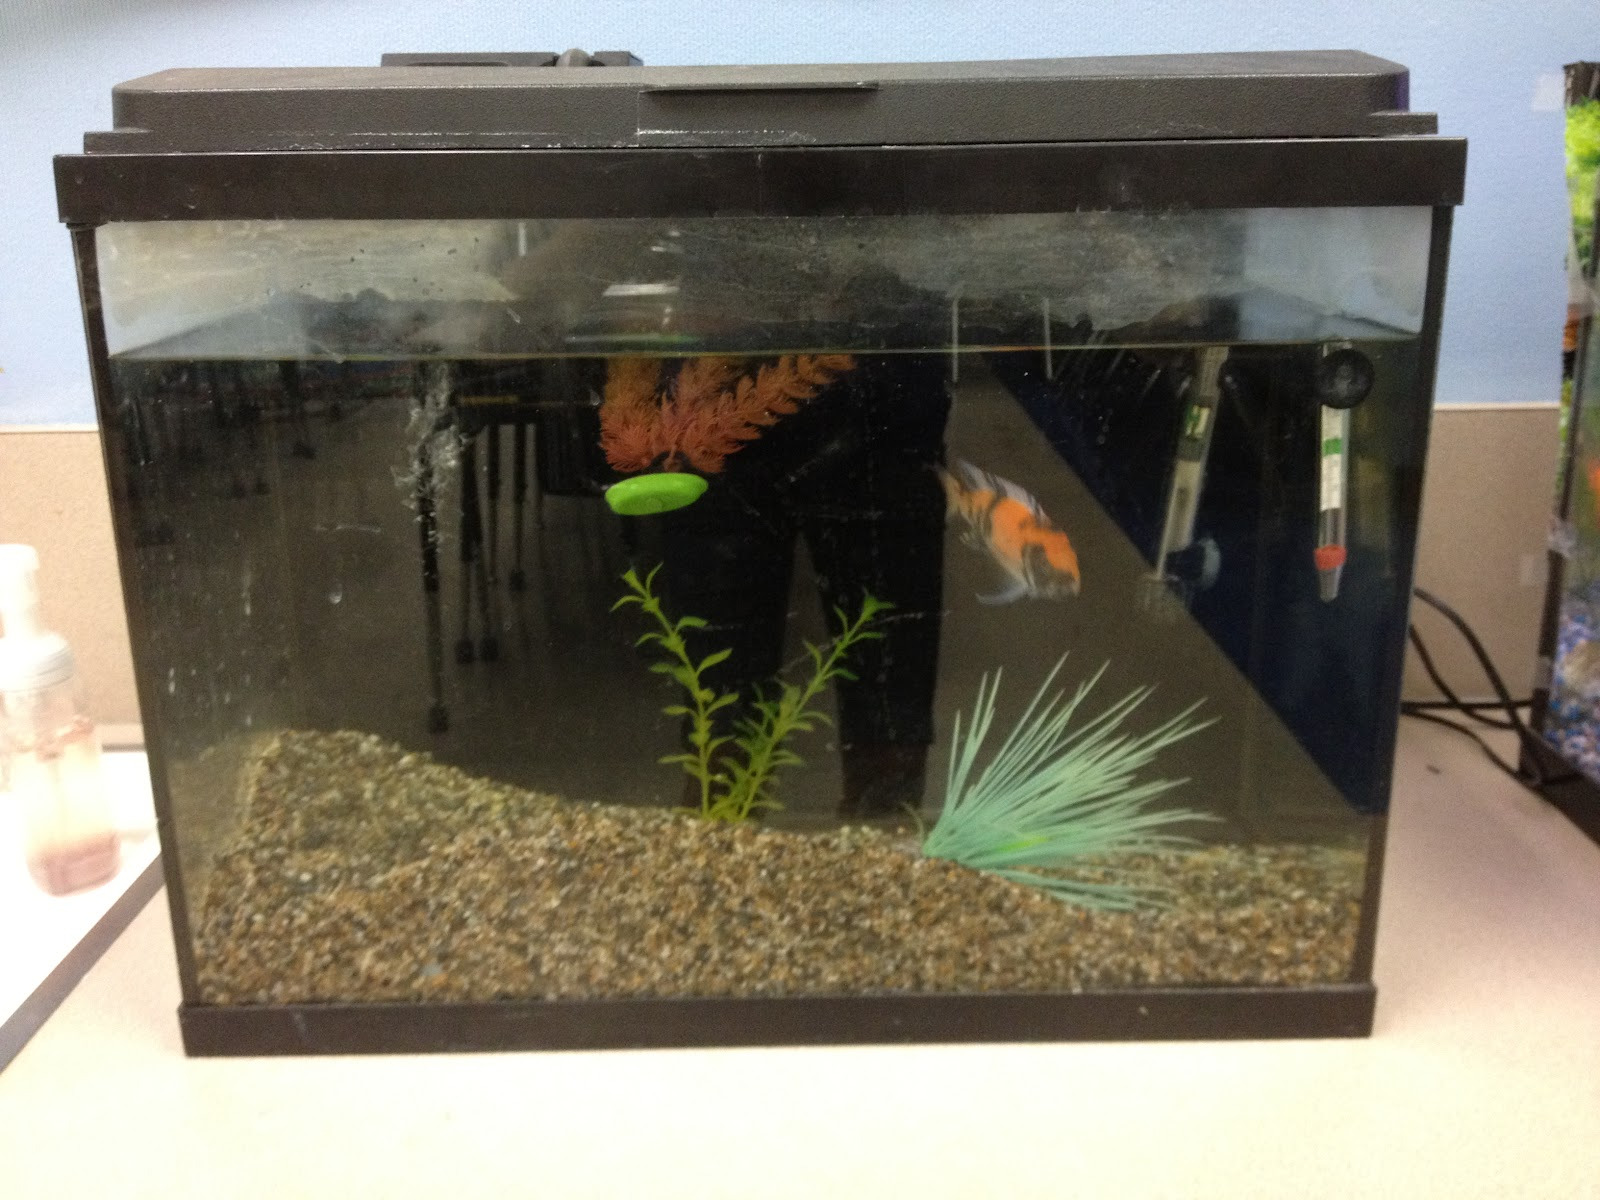 Fish aquarium jobs - Fish Are Great Because They Are Very Low Maintenance I Probably Do About 10 Minutes Of Work Per Month To Care For Them Because One Of Our Classroom Jobs